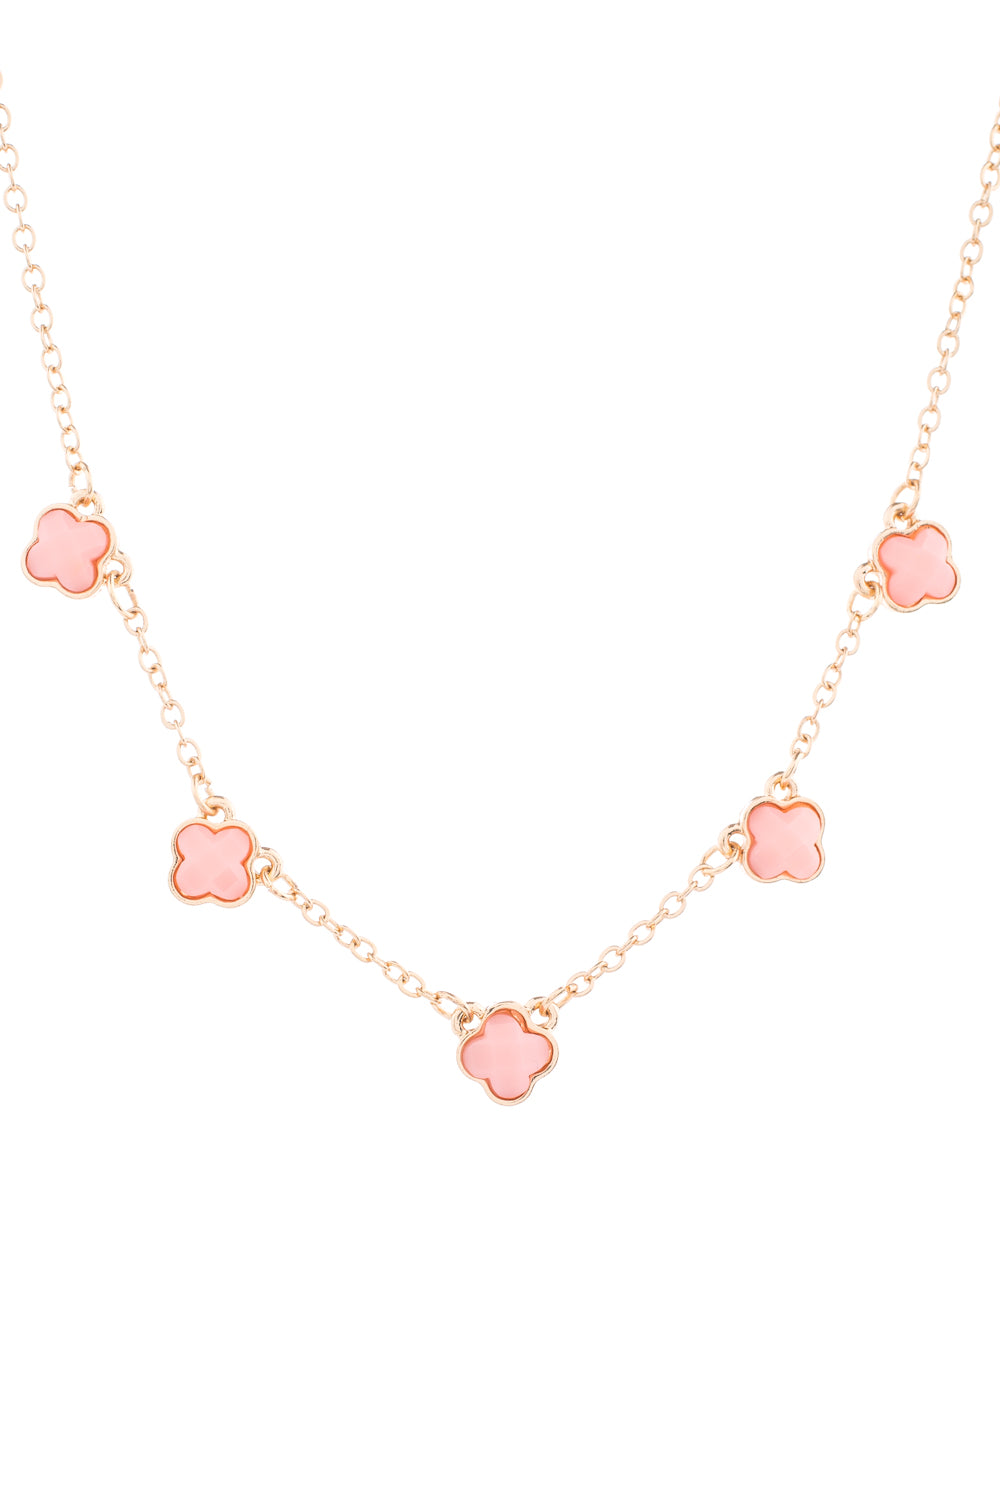 Type 1 Clever Clovers Necklace In Pink